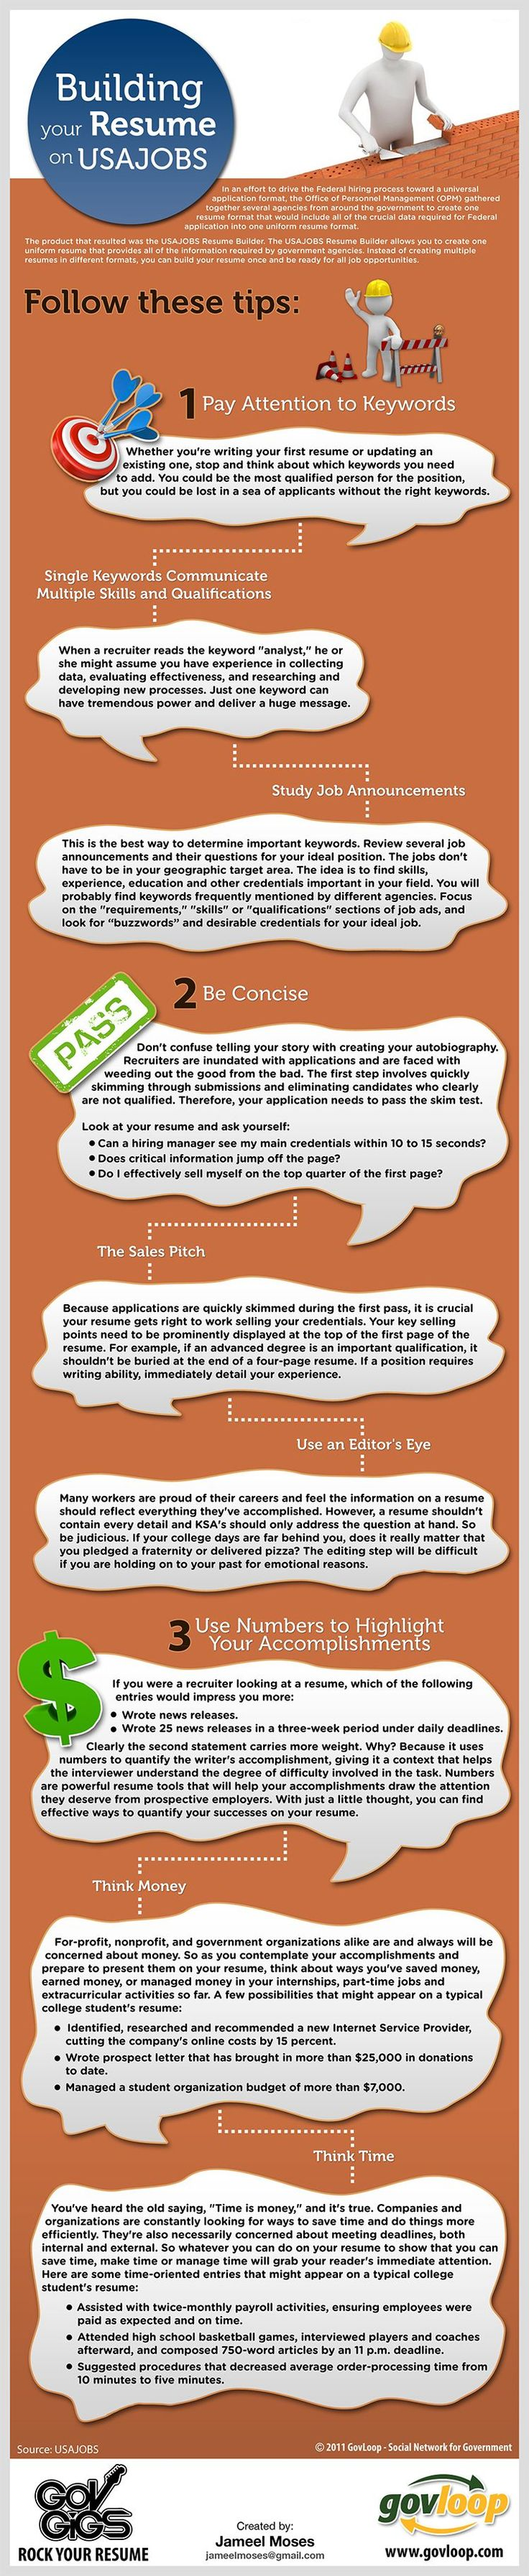 Rock Your Resume, USAJOBS-Style-- Infograph to help job seekers build their USAJOBS.com resume EFFECTIVELY!